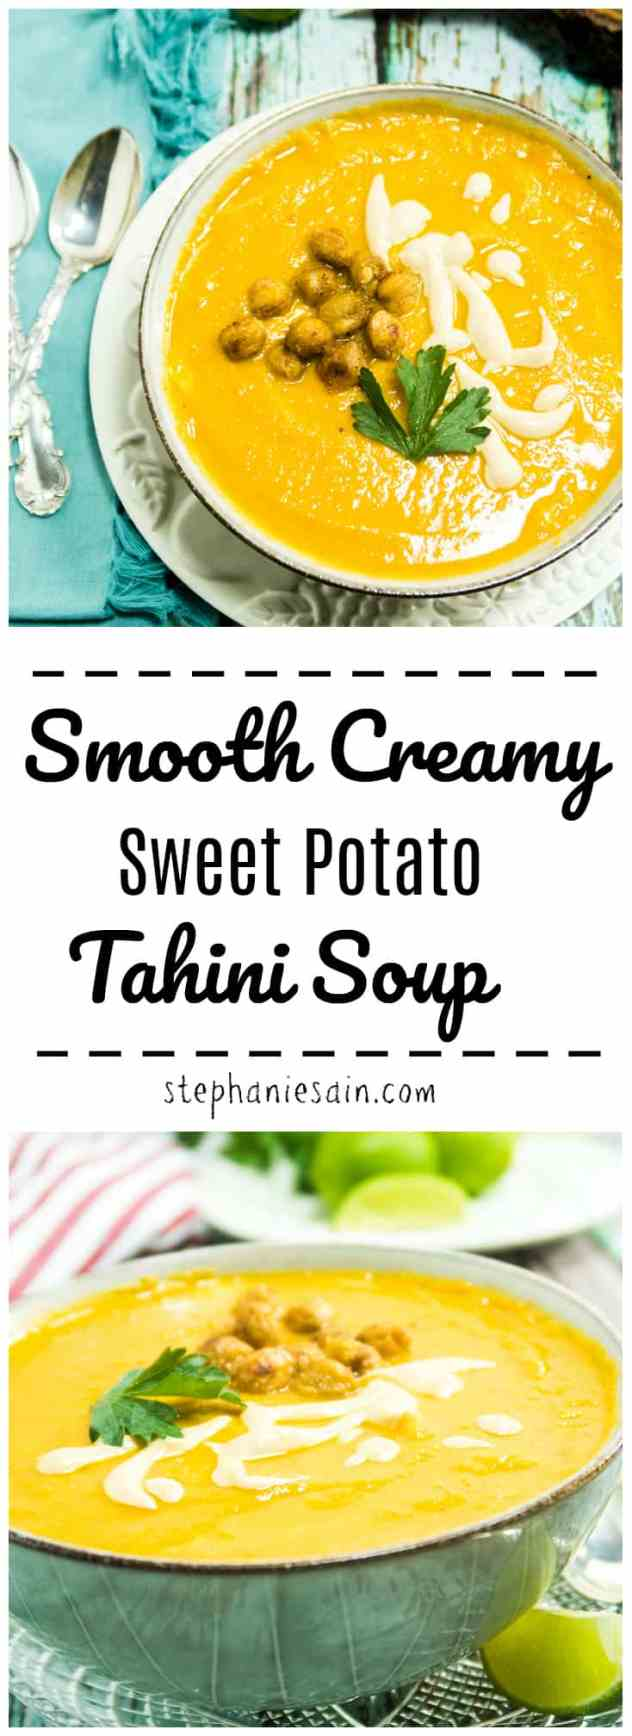 Smooth Creamy Sweet Potato Tahini Soup is slightly sweet & mildly nutty. With all the flavors of Fall it's the perfect soup for cool evenings. Vegan & Gluten Free.